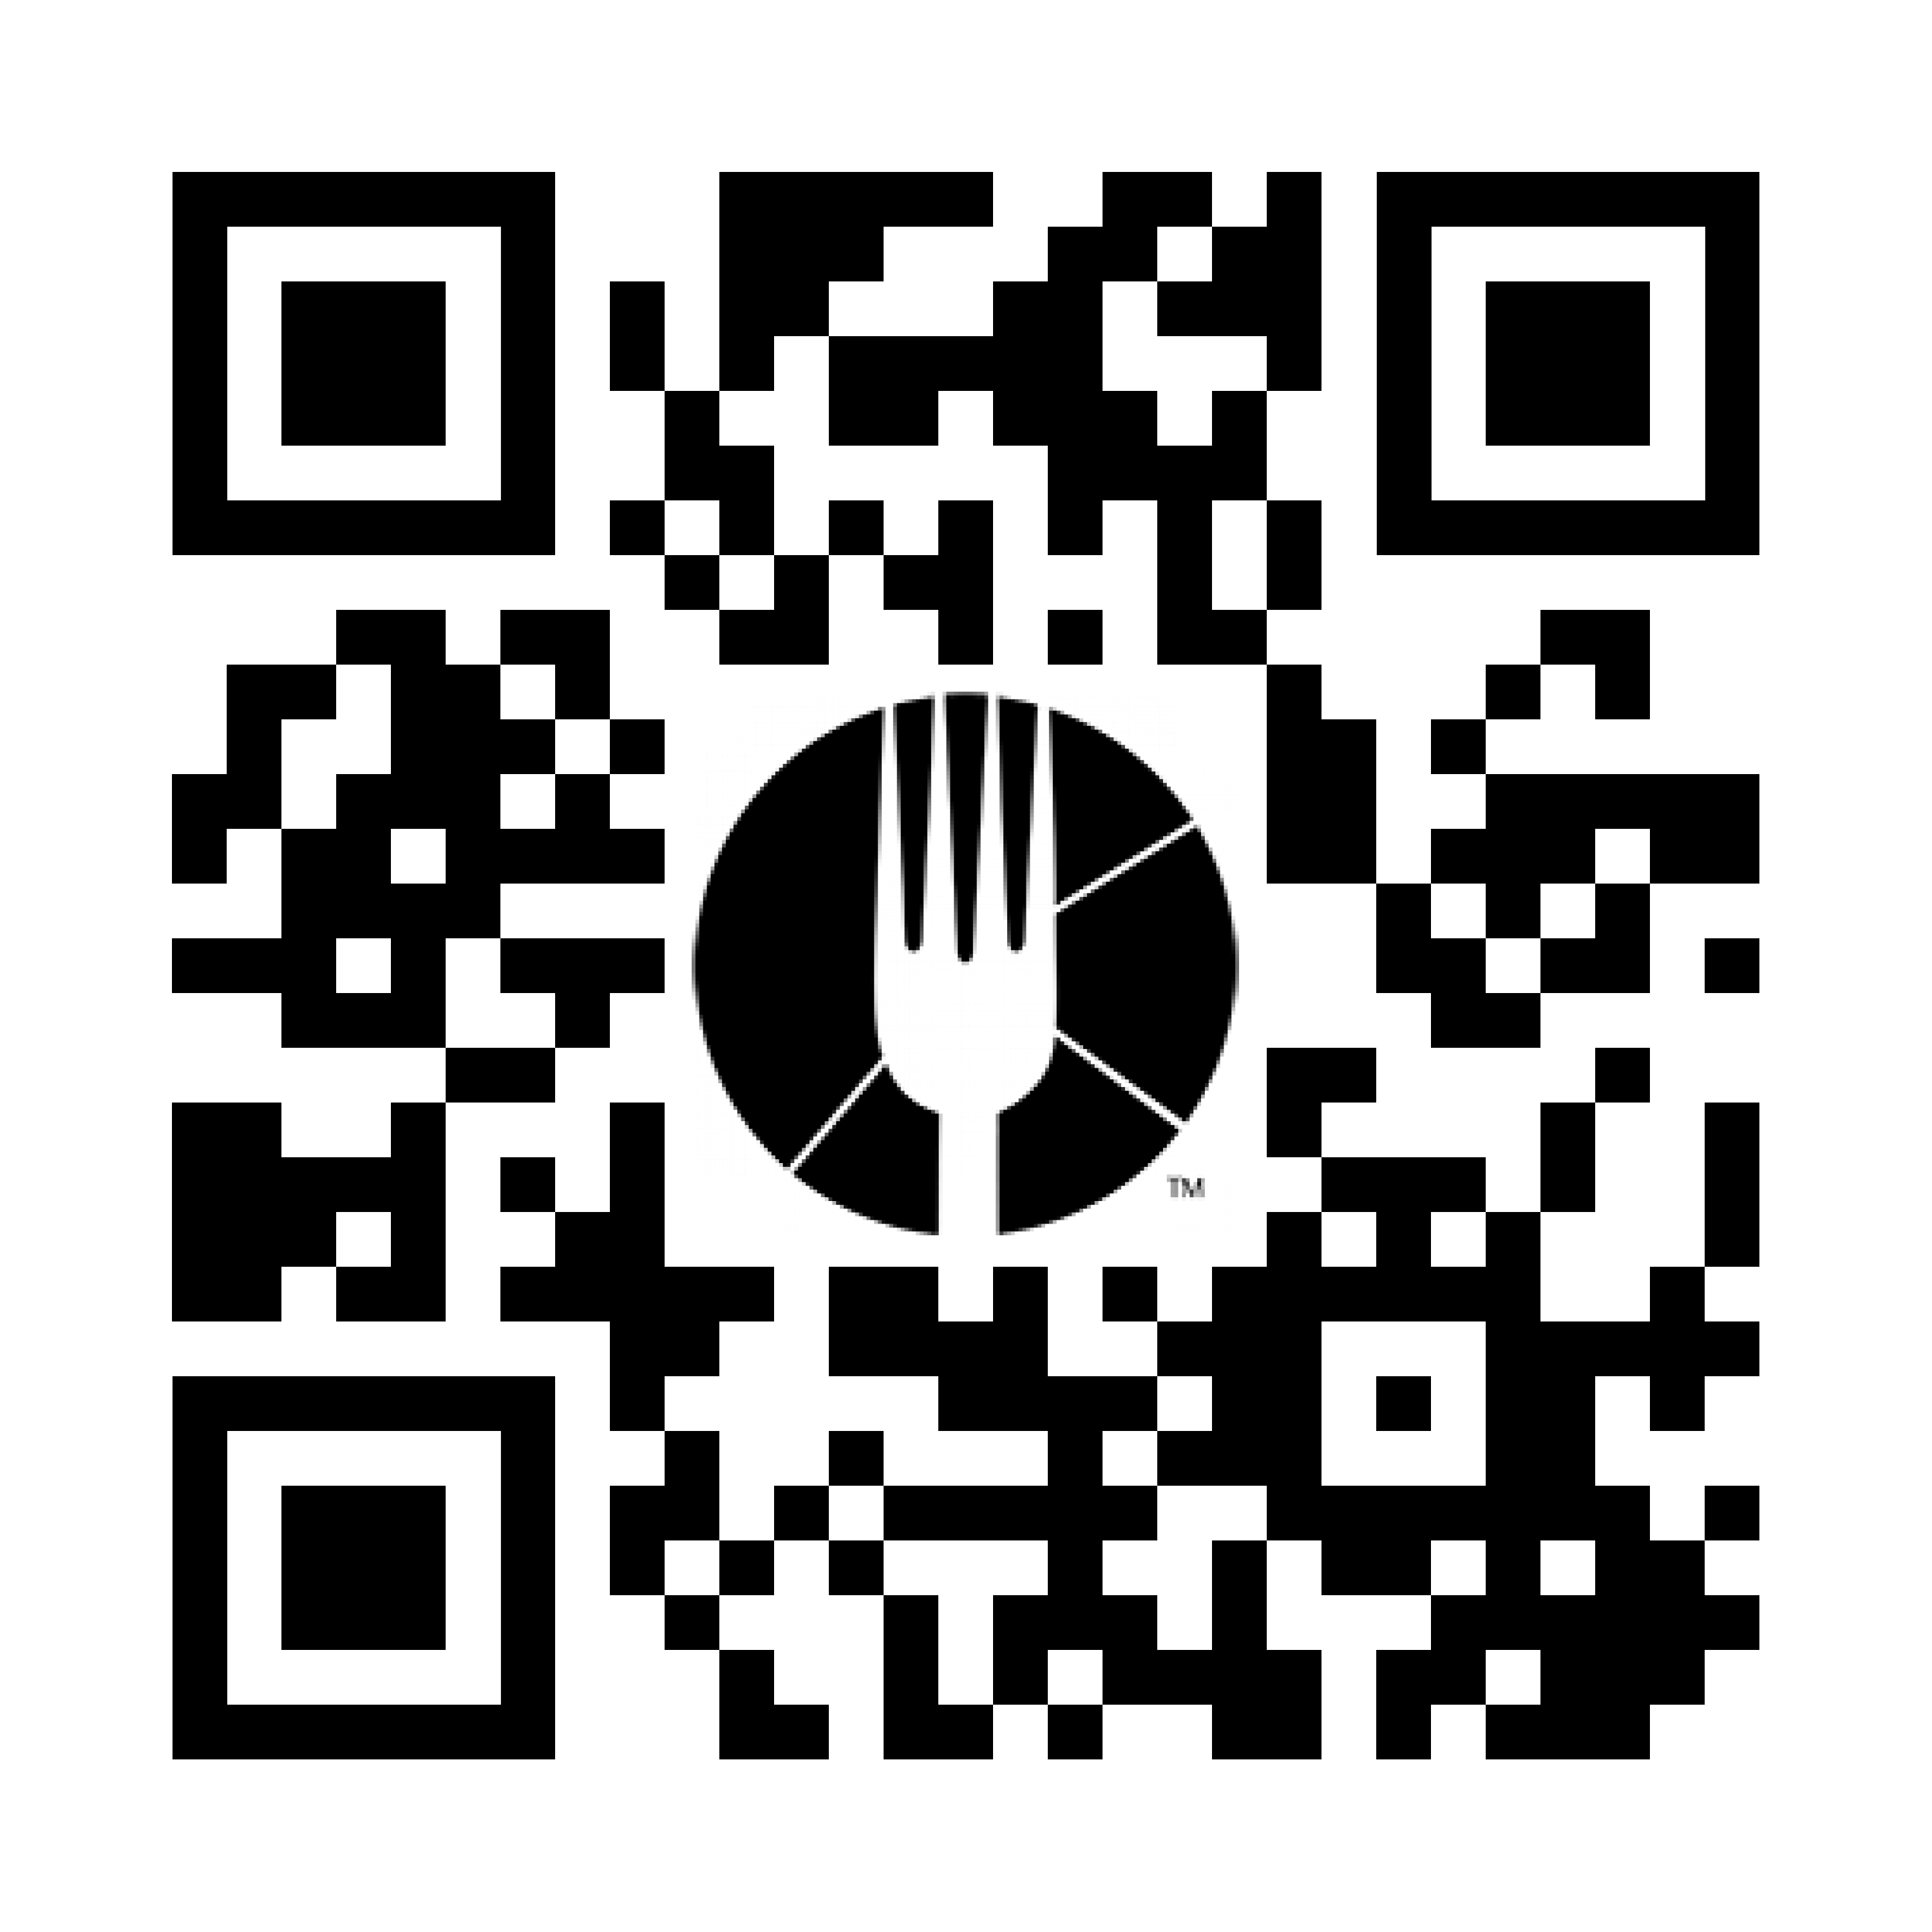 QR code to enable users to download the dinova mobile app